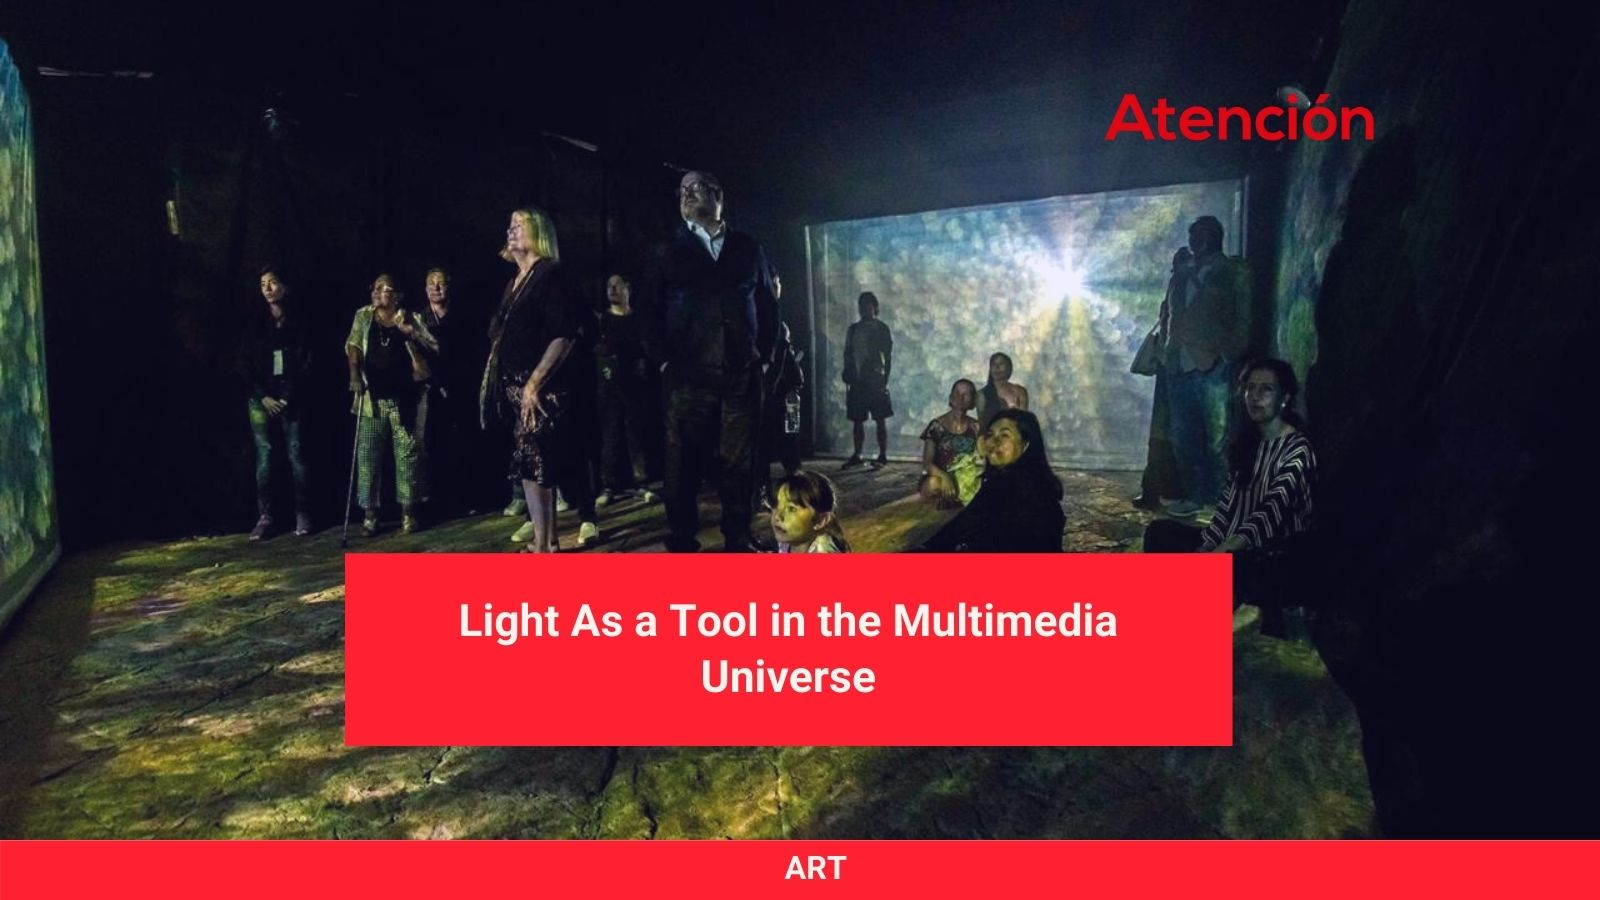 Light-As-a-Tool-in-the-Multimedia-Universe.jpg